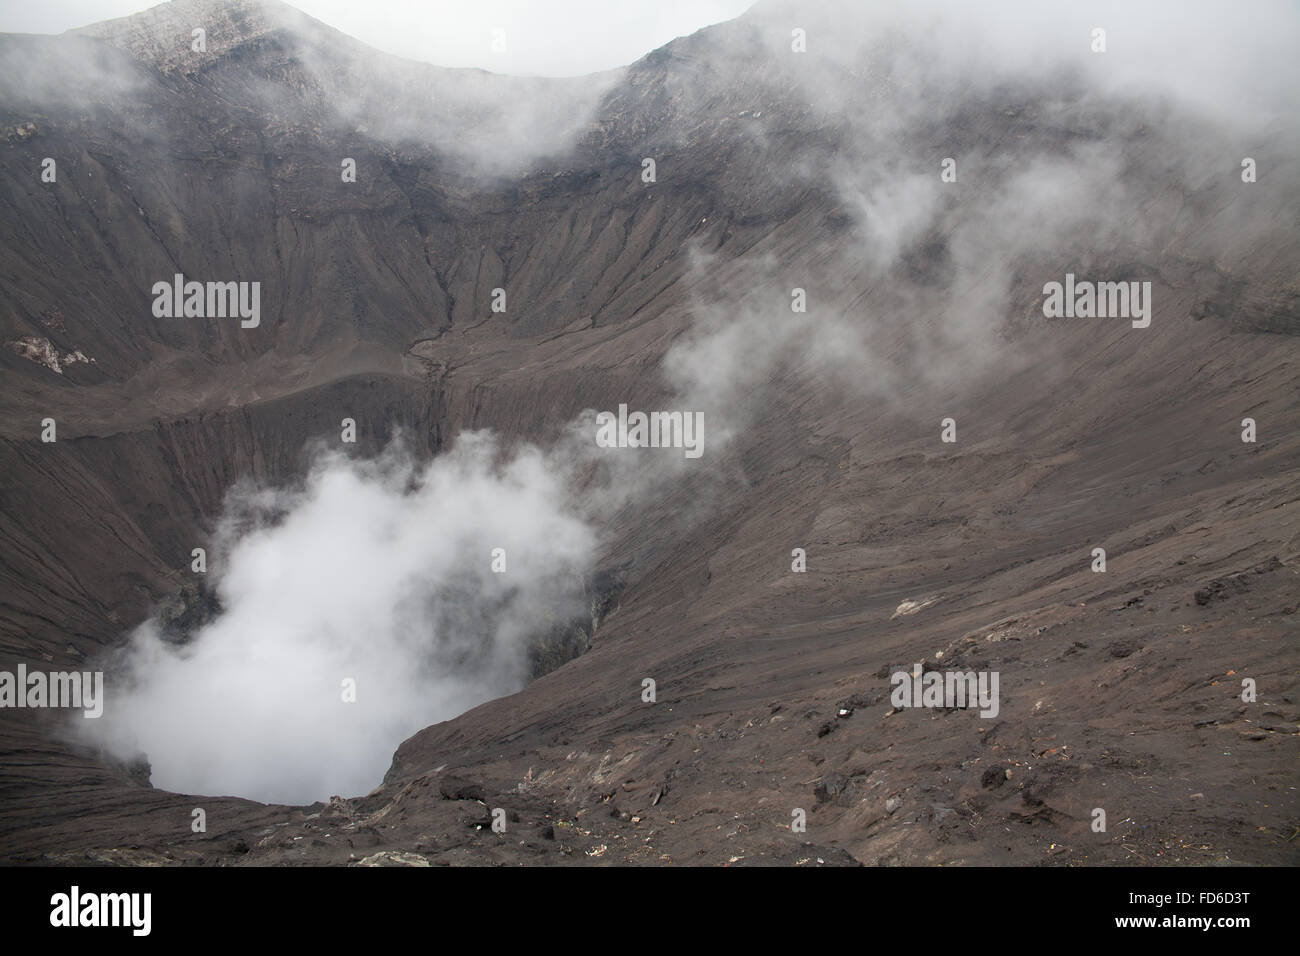 Smoke Coming Out Of Crater - Stock Image